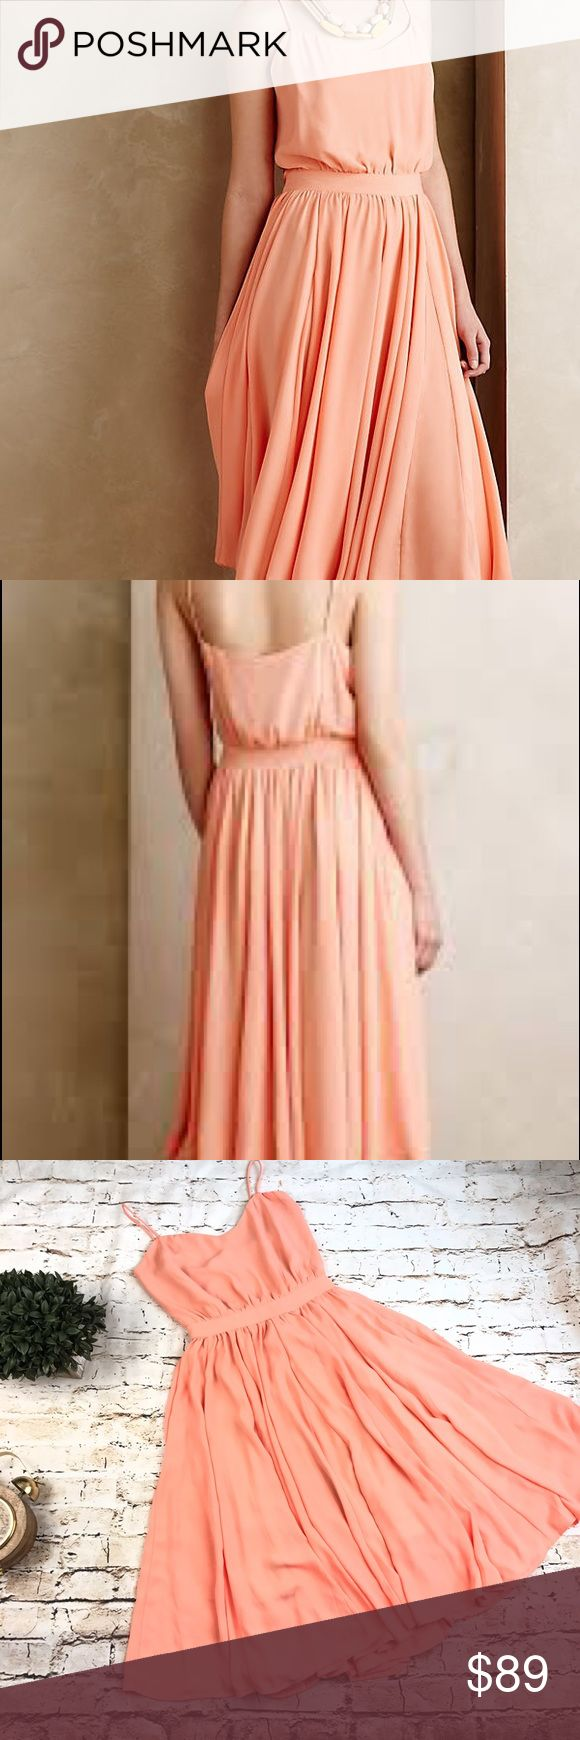 Anthropologie Paper Crown Women's Peachtree Dress Anthropologie Paper Crown Women's Peachtree Dress Full Skirt Spaghetti Strap 2 Gorgeous dress from Lauren Conrad sold at Anthro. Poly crepe, set in waist, blouson bodice, side zip. Features: Brand: Paper Crown for Anthropologie Color:  Peach Gender: Women's Dress Length: Below Knee Style: Full Skirt Size: 2 Sleeve Style: Spaghetti Strap Size Type: Regular Material: 100% Polyester Measurements: Bust (in): 17  Waist (in):12.5  Total Length…